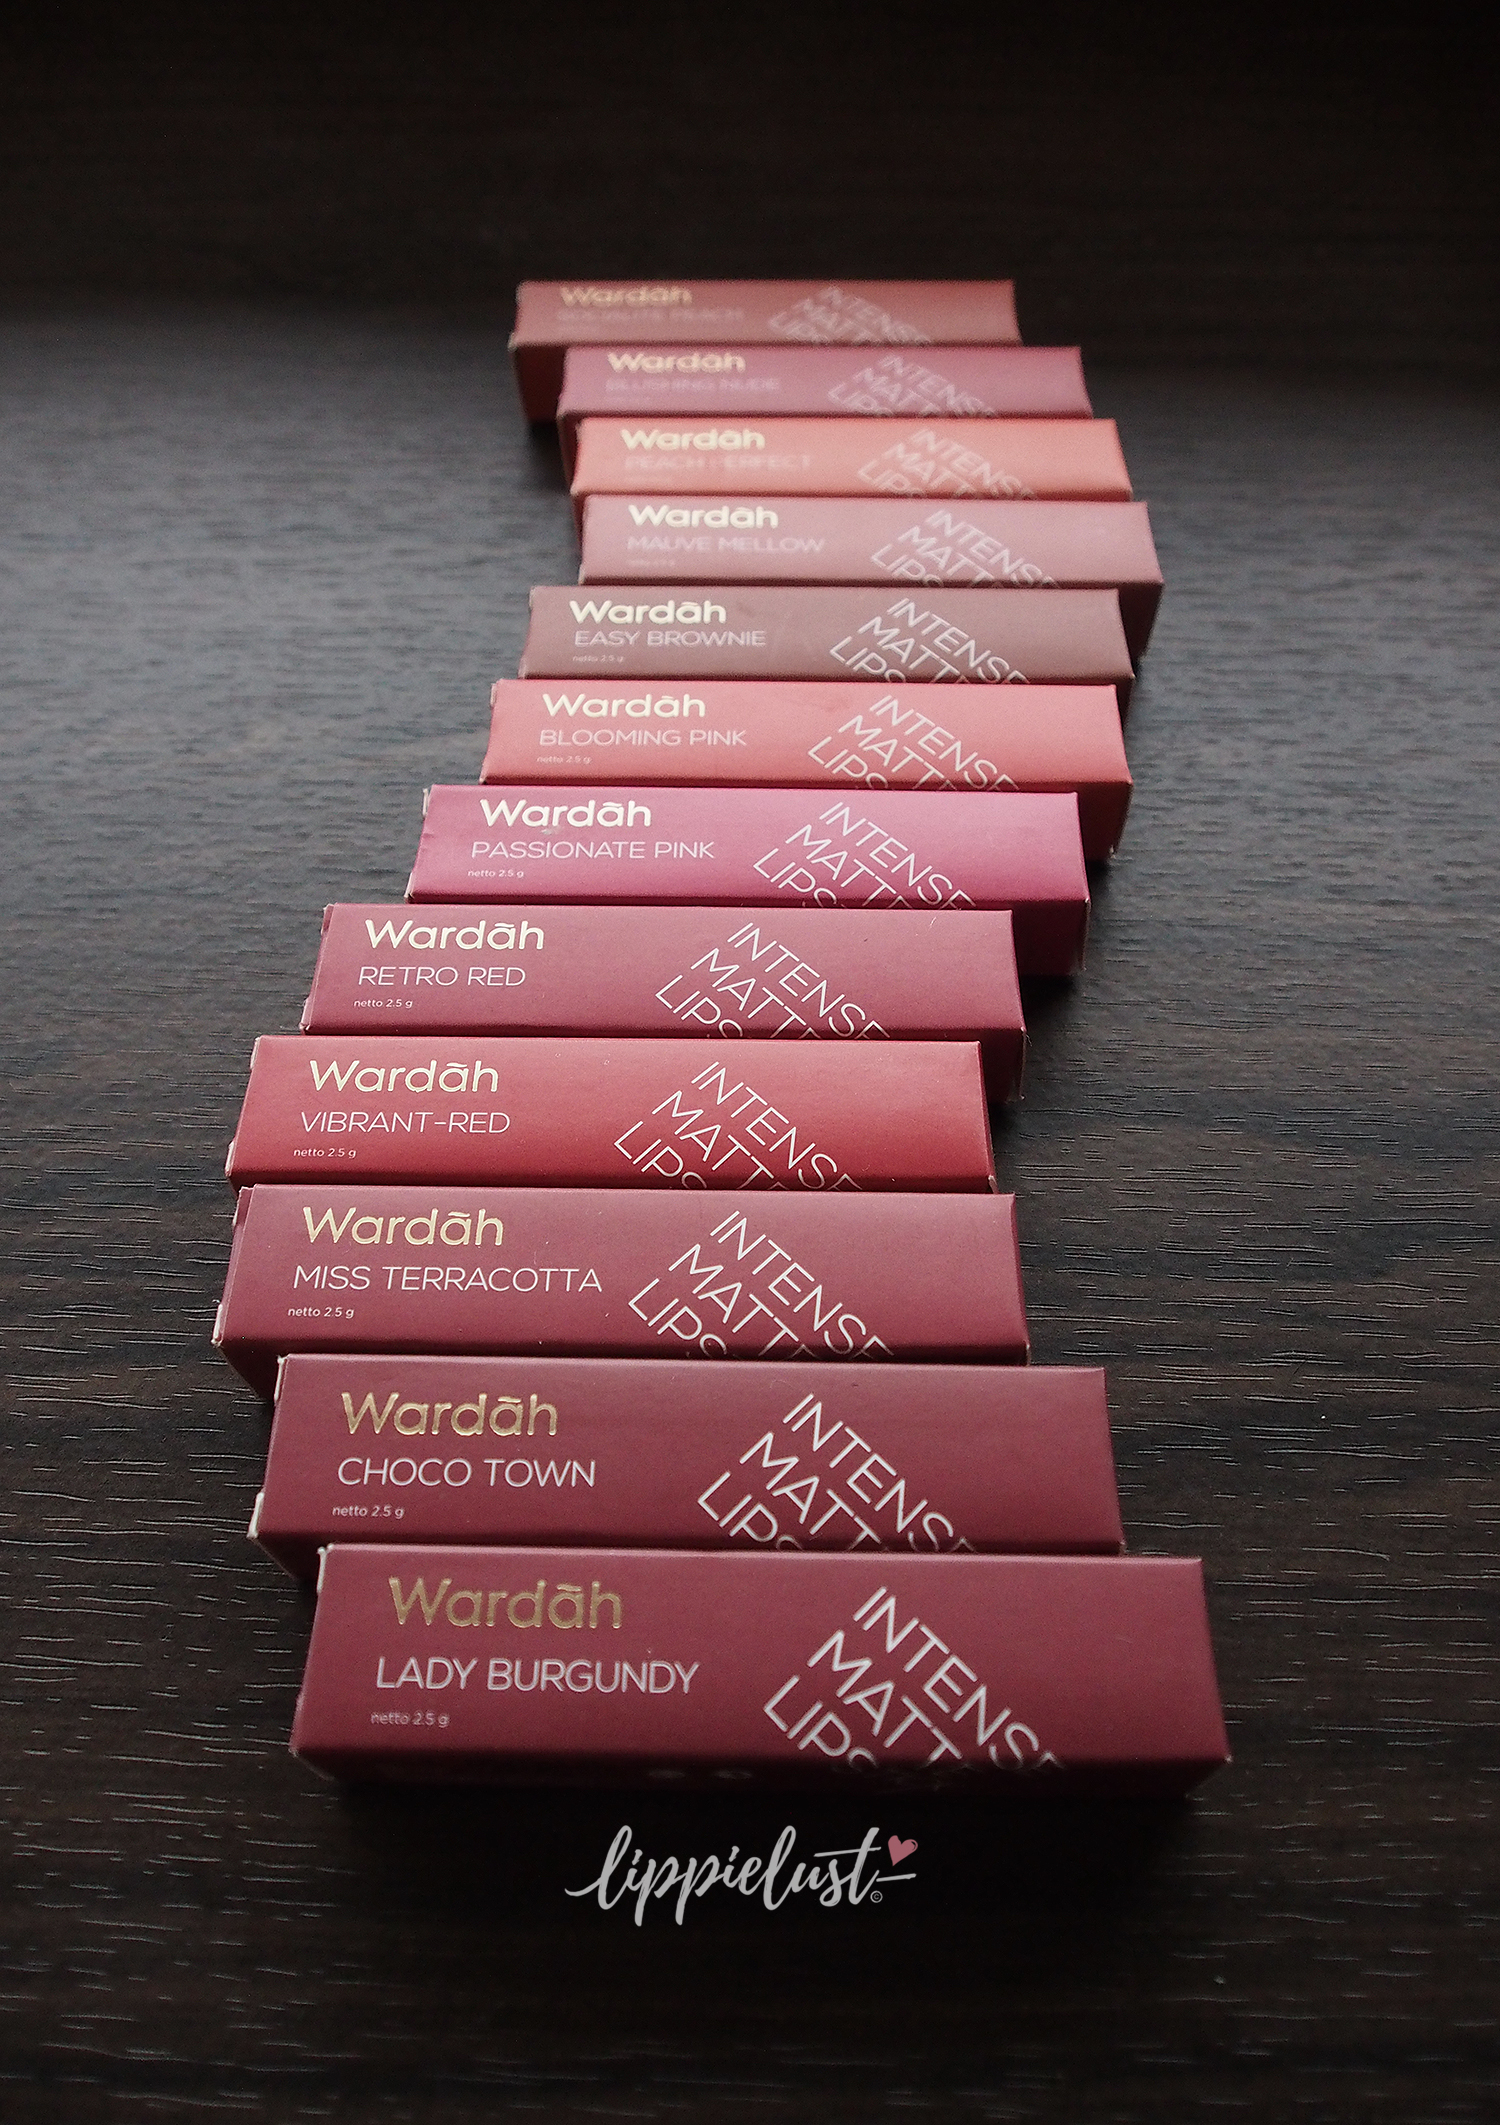 12 shades of Wardah Intense Matte Lipstick